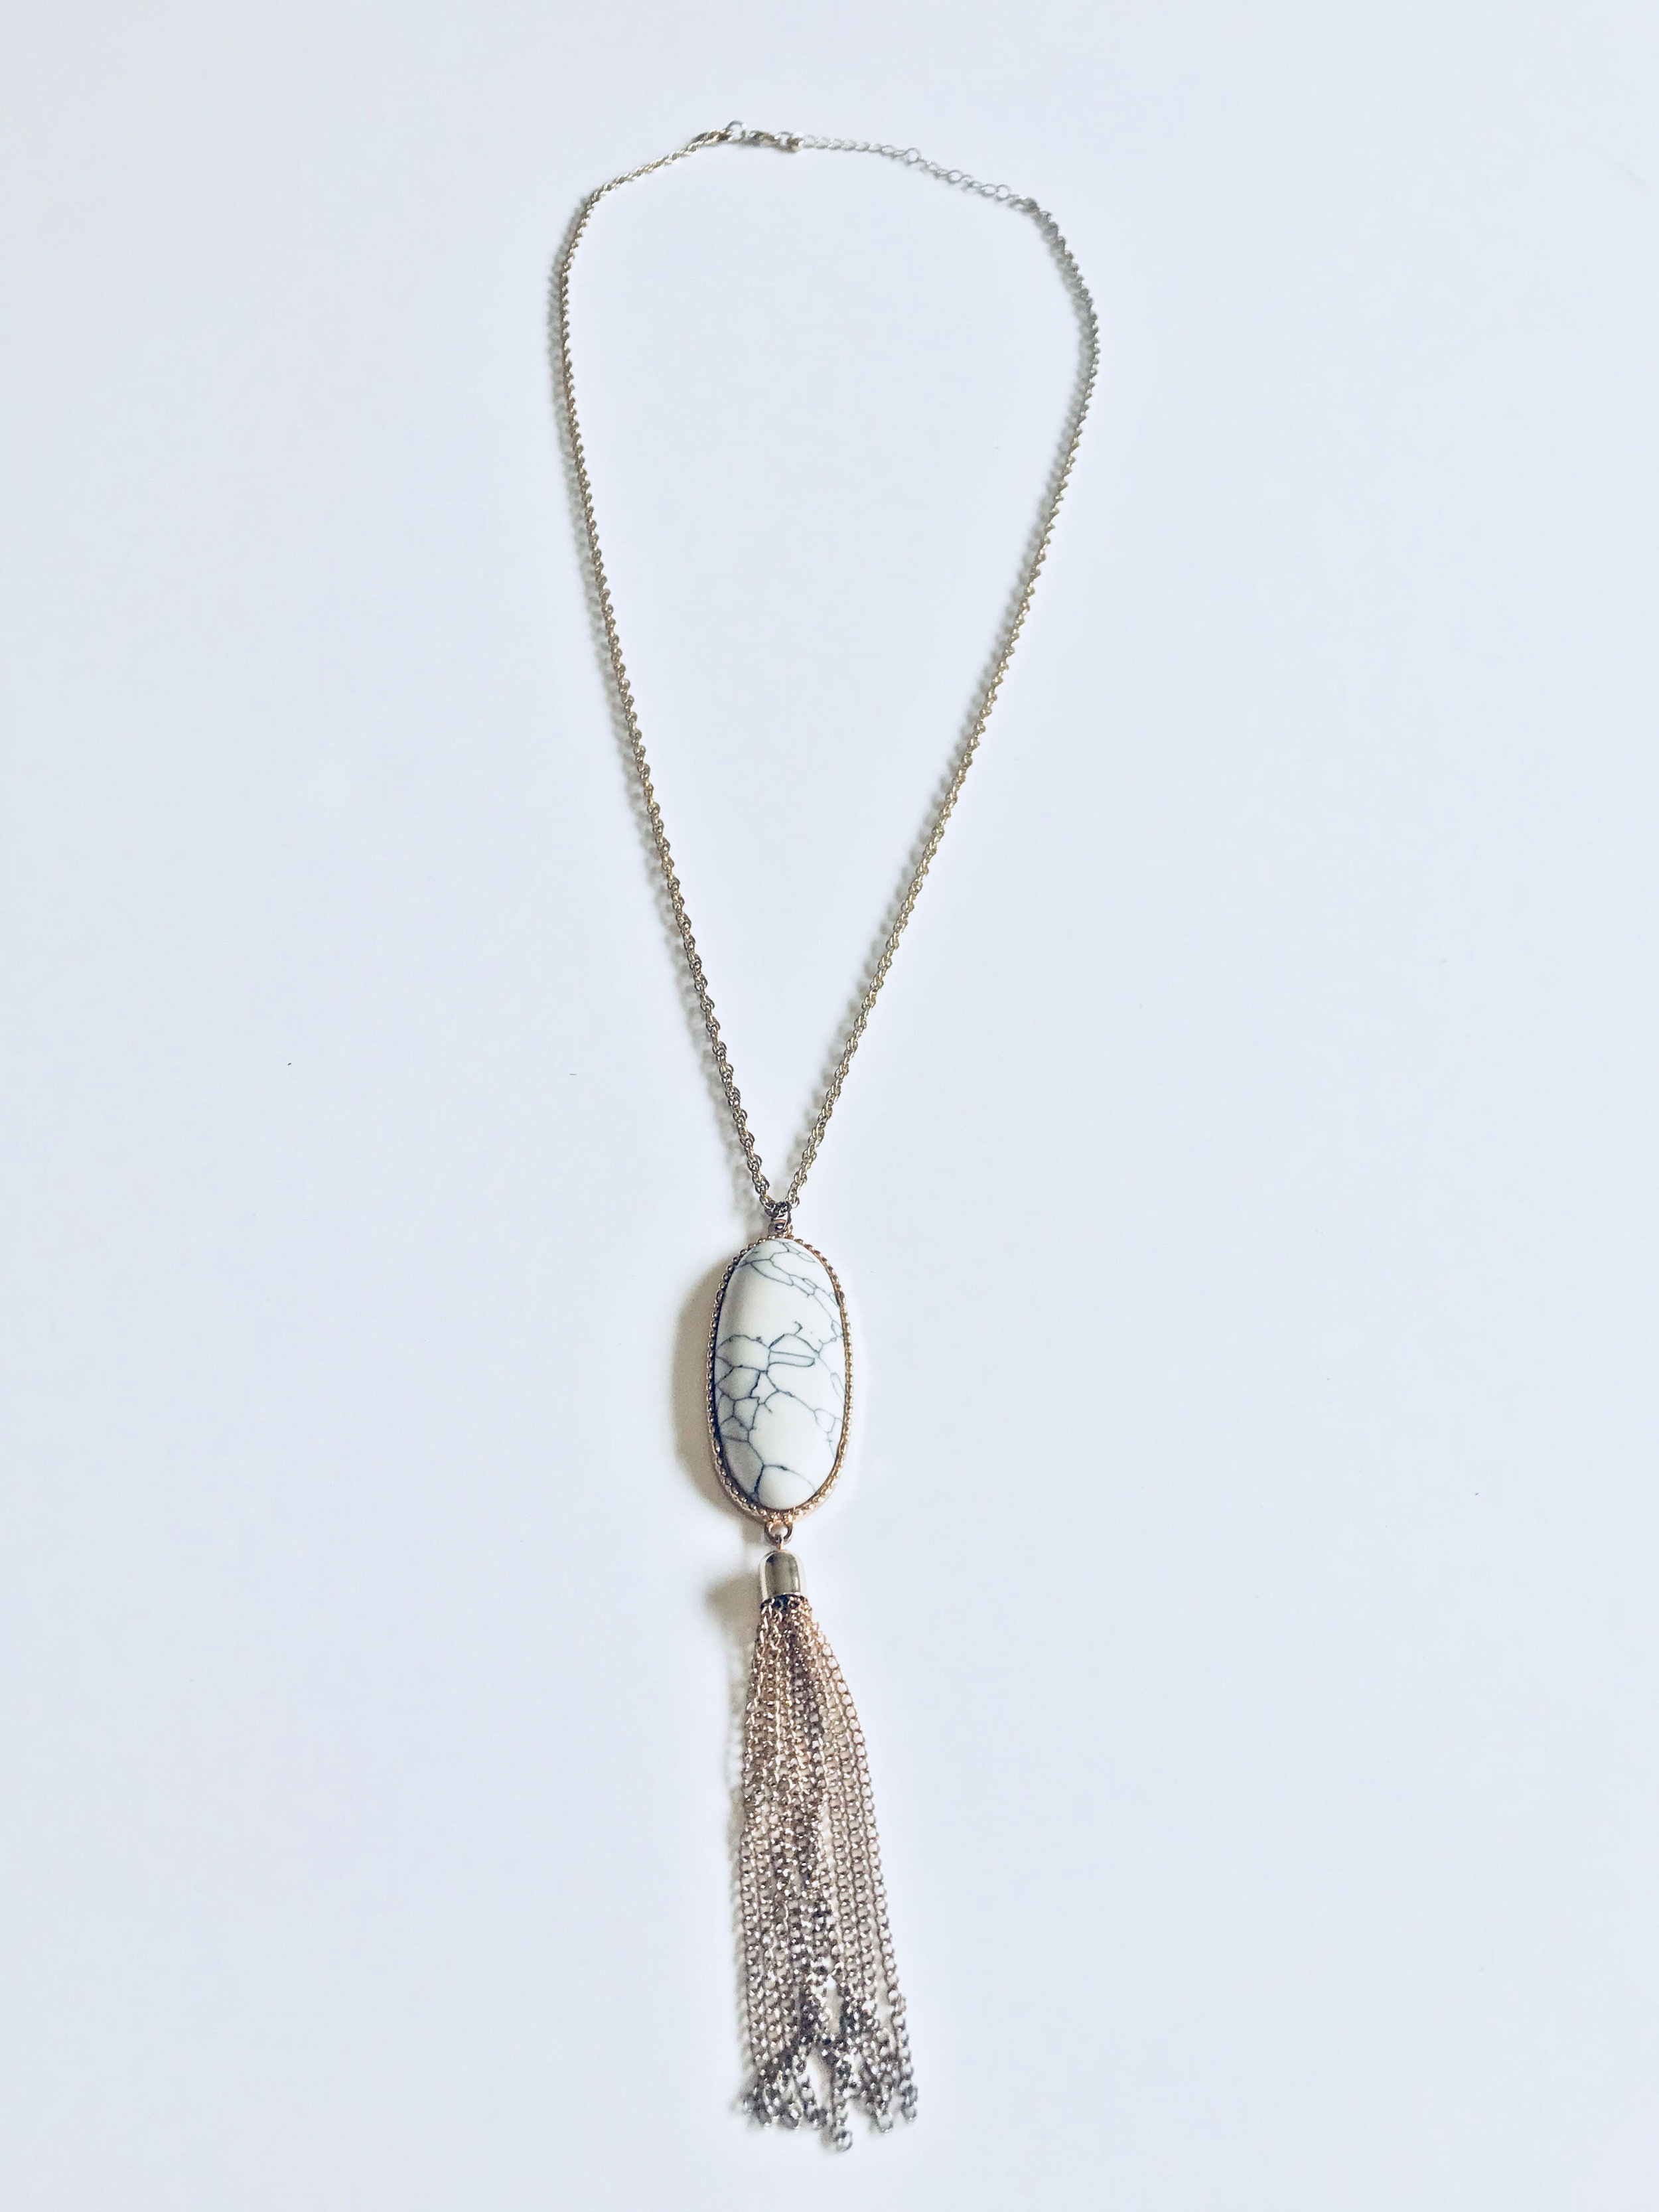 4. Marble Necklace - Price: $4Brand: Unknown